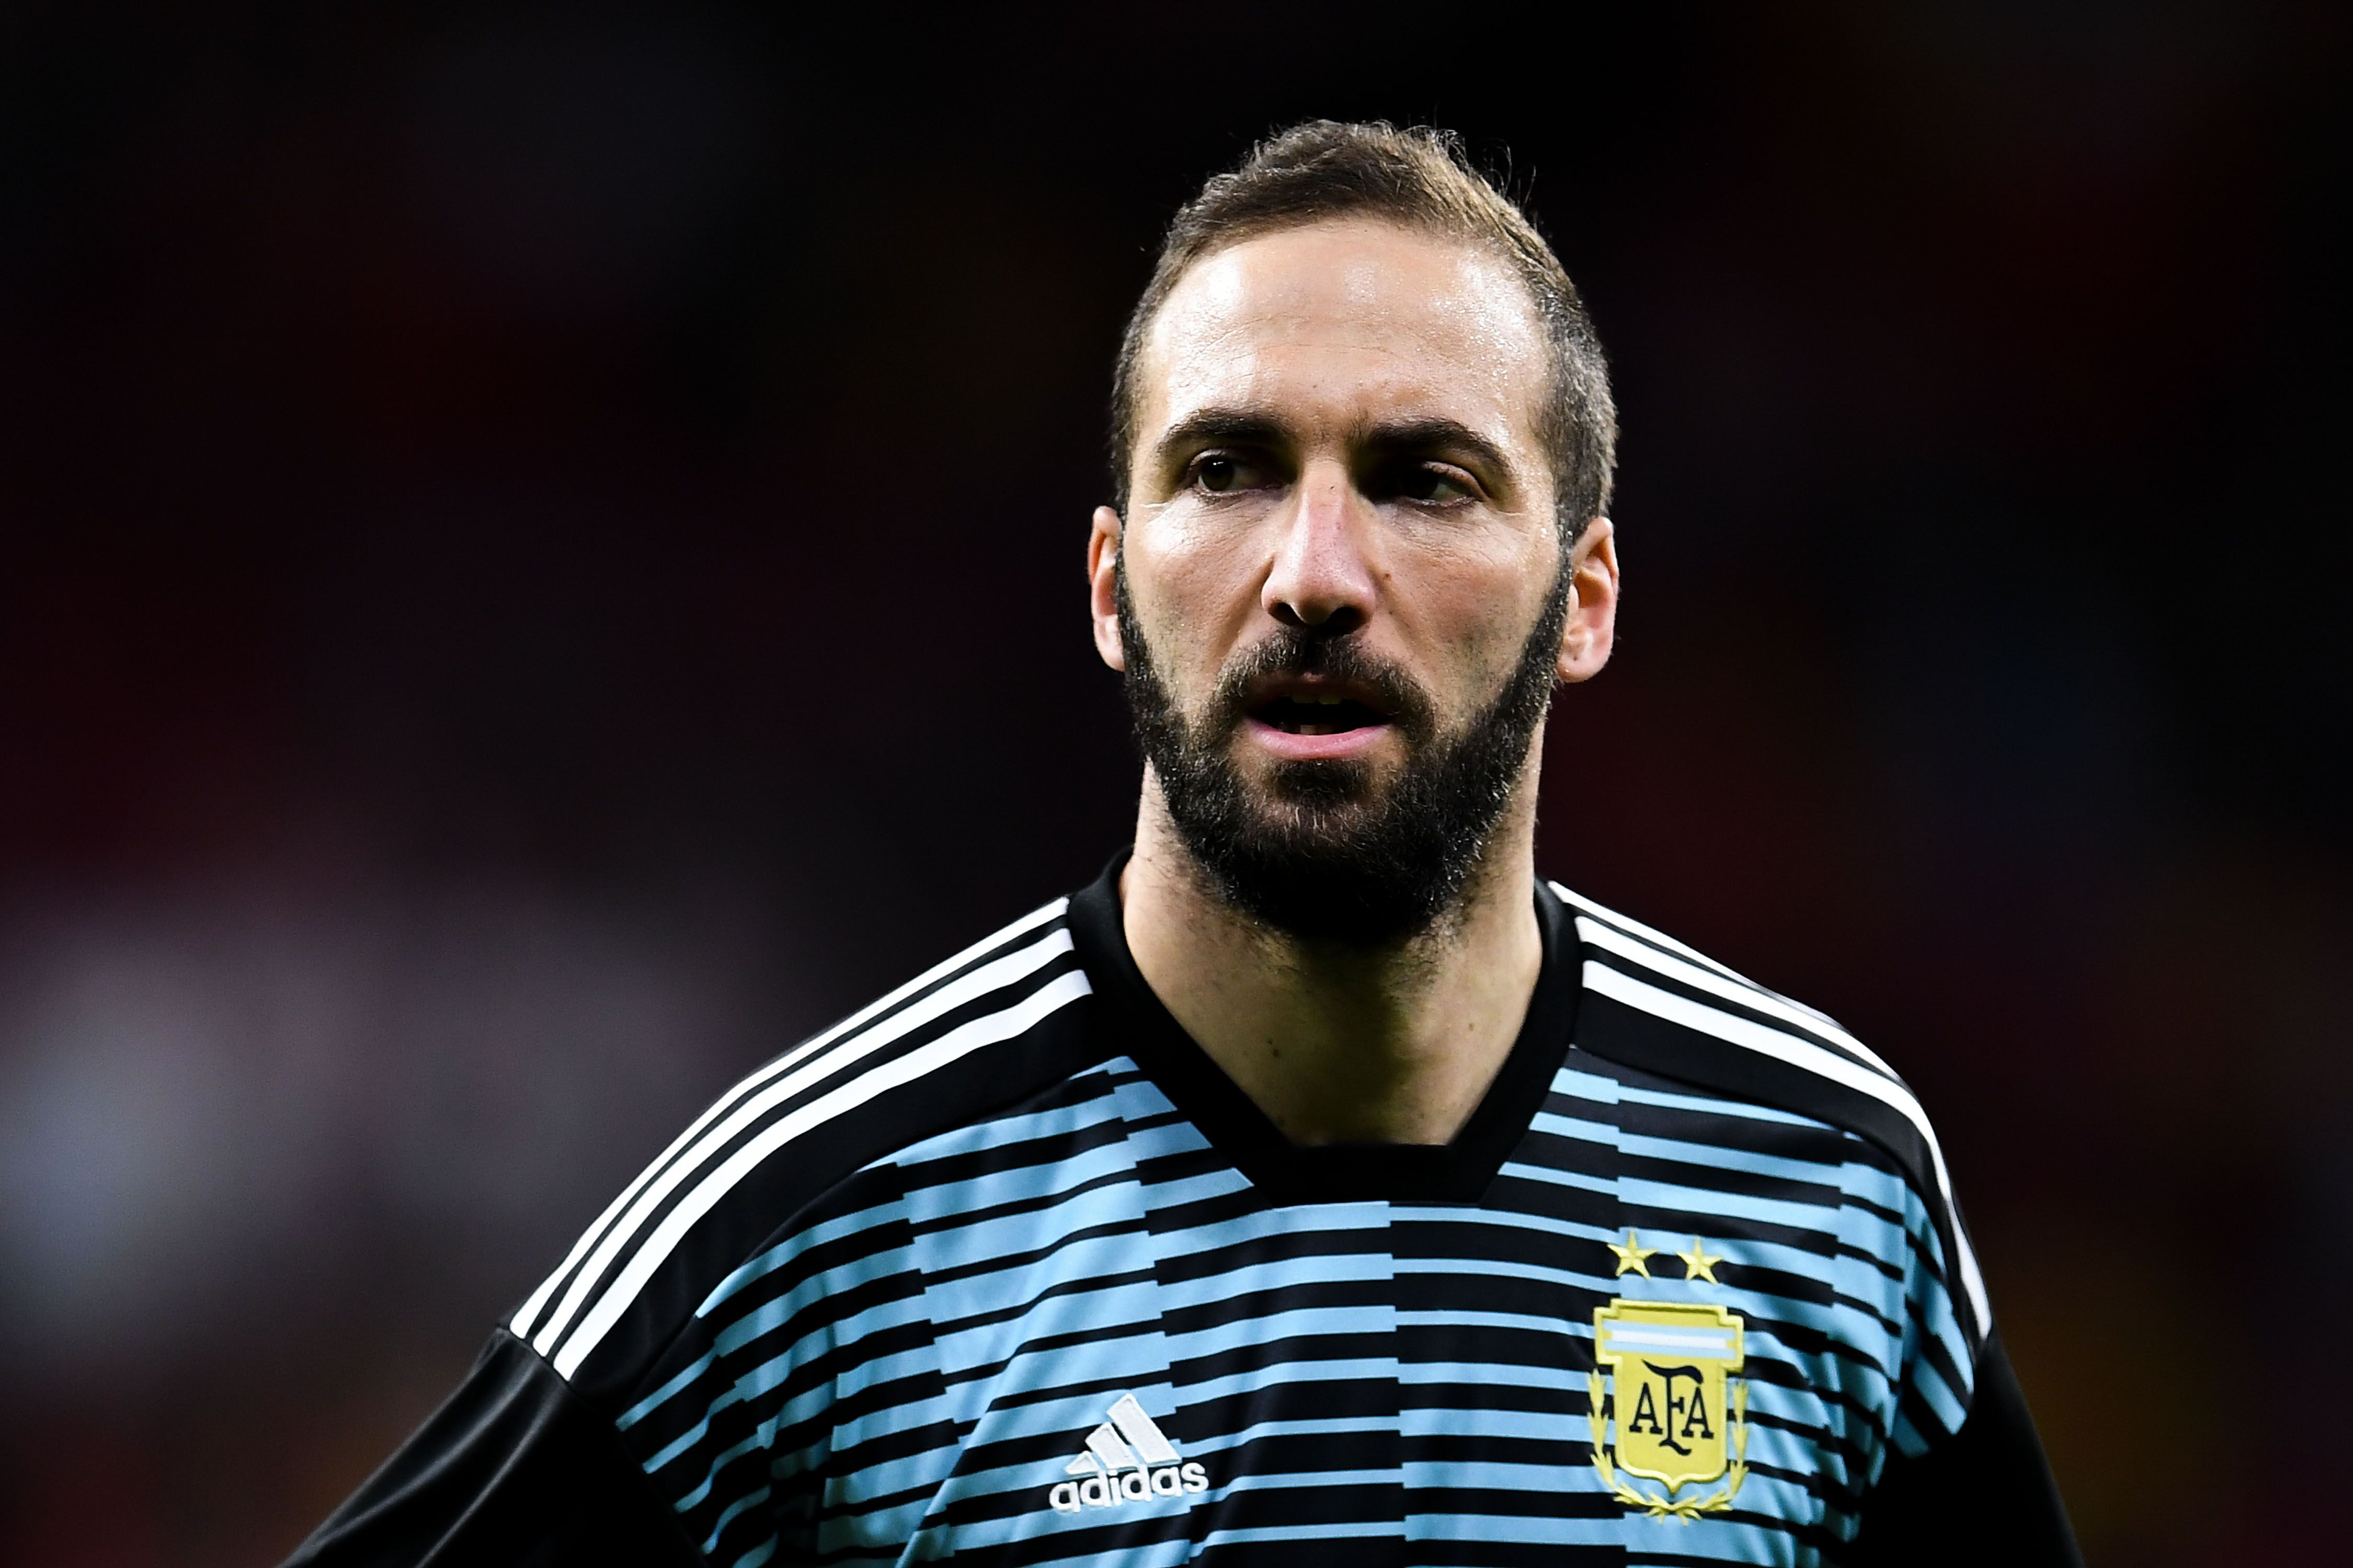 Madrid Spain March  Gonzalo Higuain Of Argentina Looks On During An International